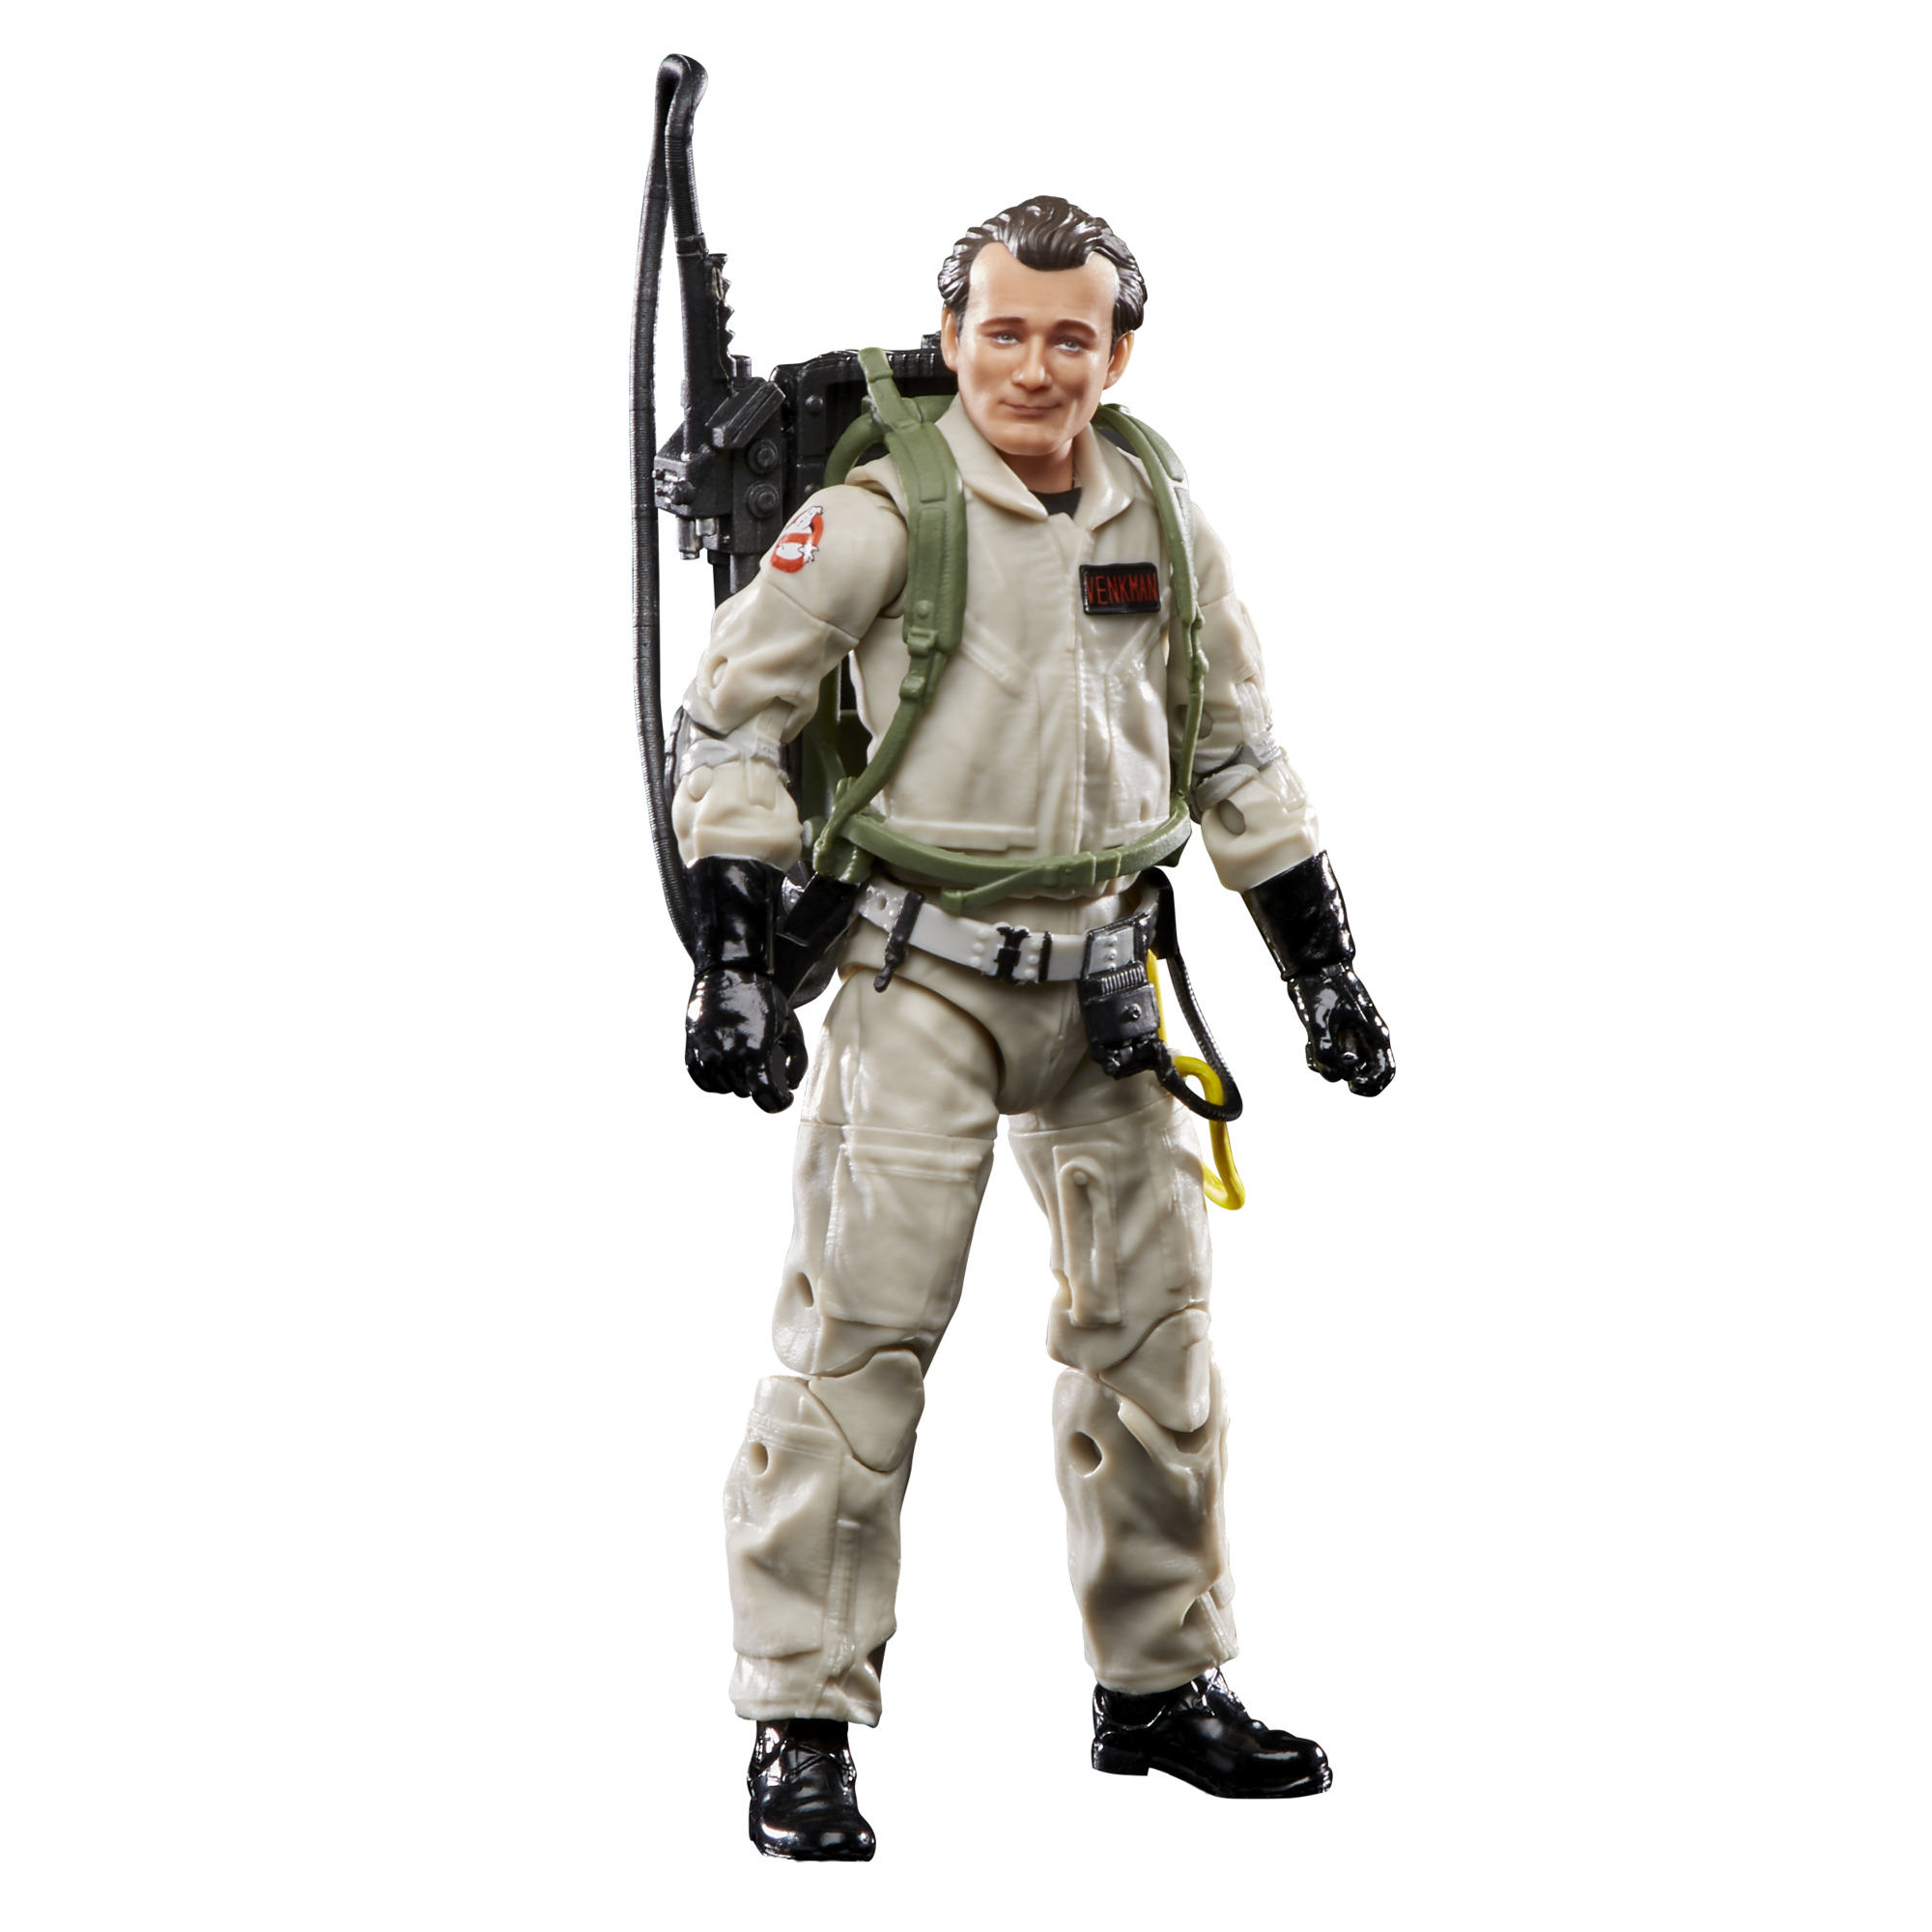 Ghostbusters Plasma Series Peter Venkman Toy 6-Inch-Scale Collectible Classic 1984 Ghostbusters Figure, Kids Ages 4 and Up